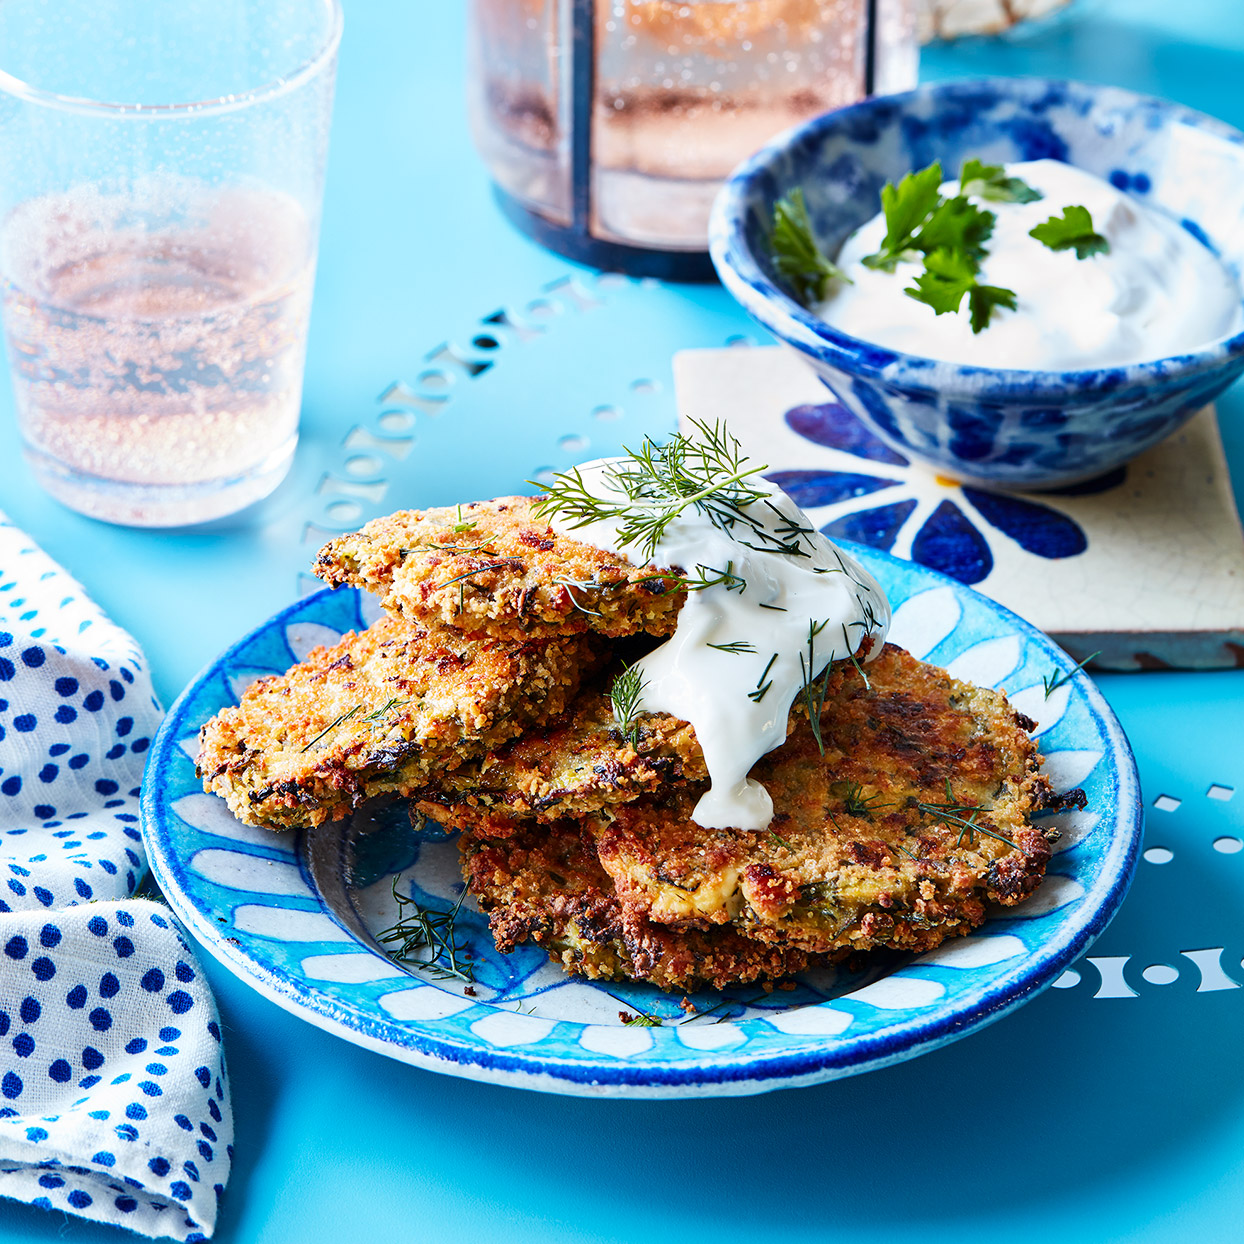 Greeks nibble on these popular zucchini patties as a meze in tavernas while waiting for their main courses to arrive. Source: EatingWell Magazine, March 2020